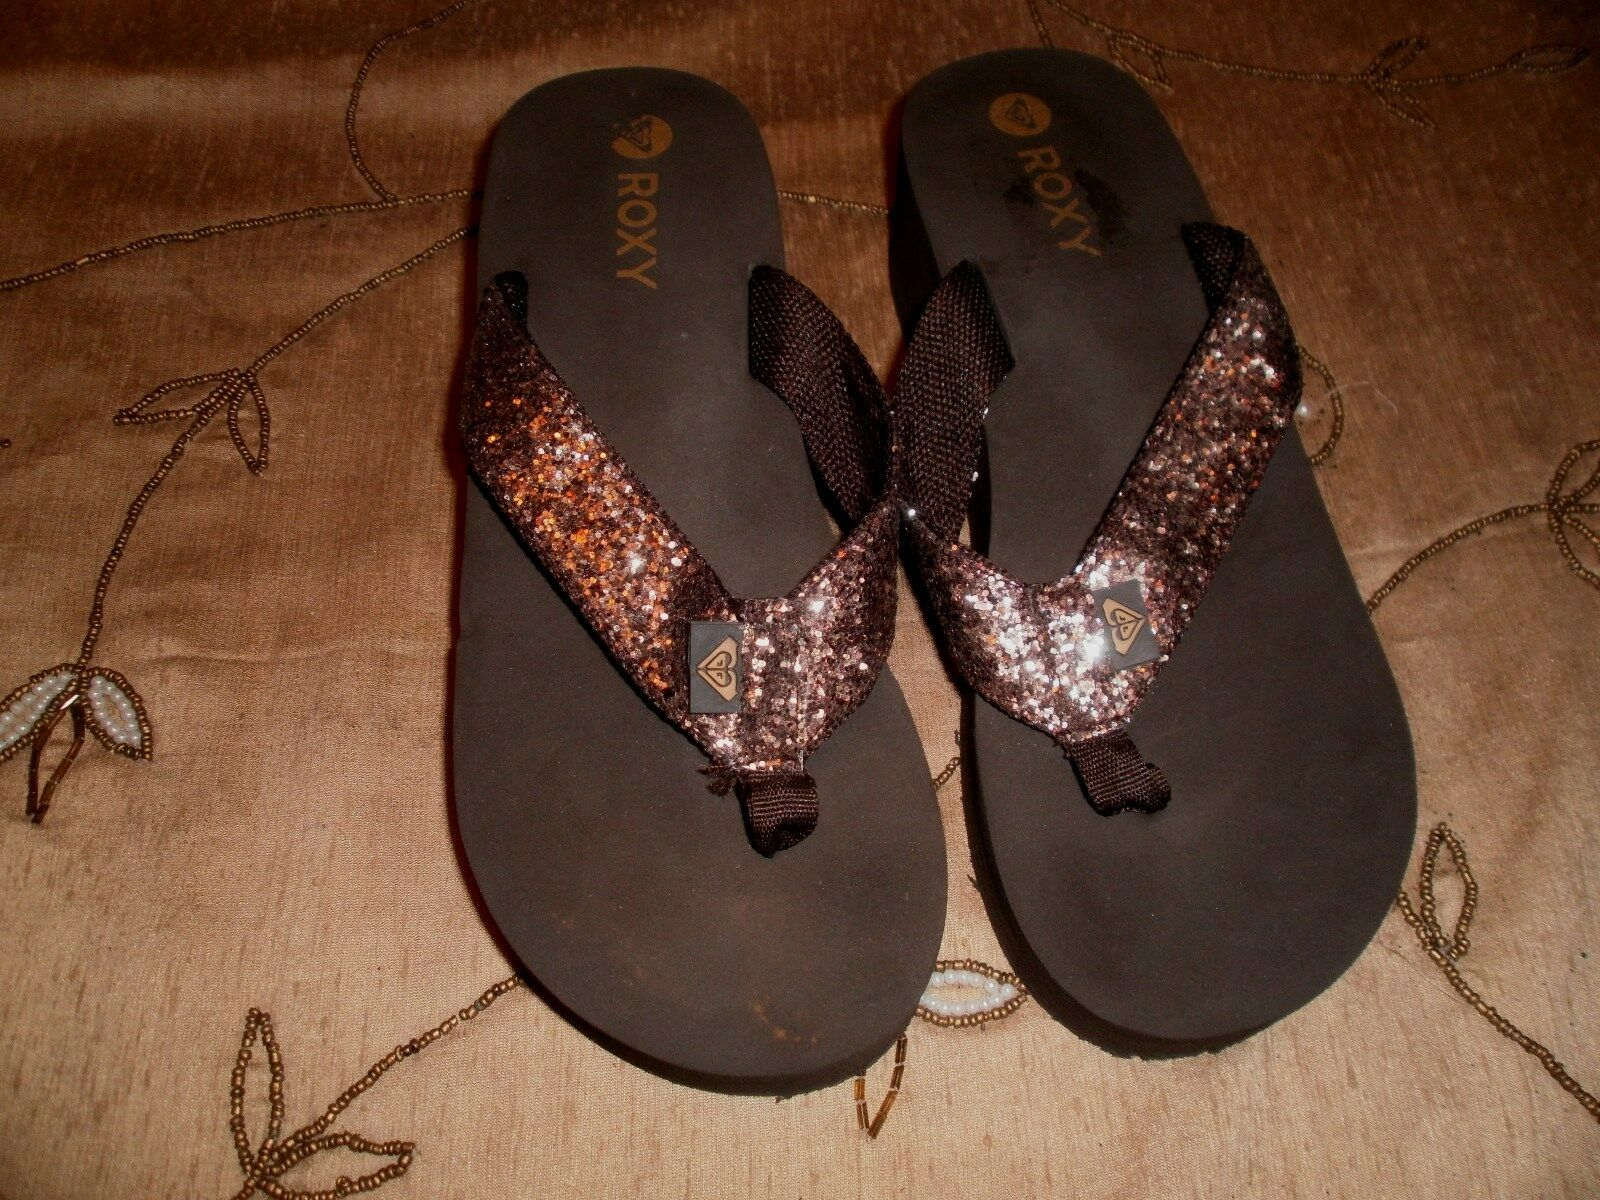 ROXY STYLE WOMEN'S BROWN GLITTER CLOG STYLE ROXY THONGS WITH LOGO-SIZE 7 a950f3